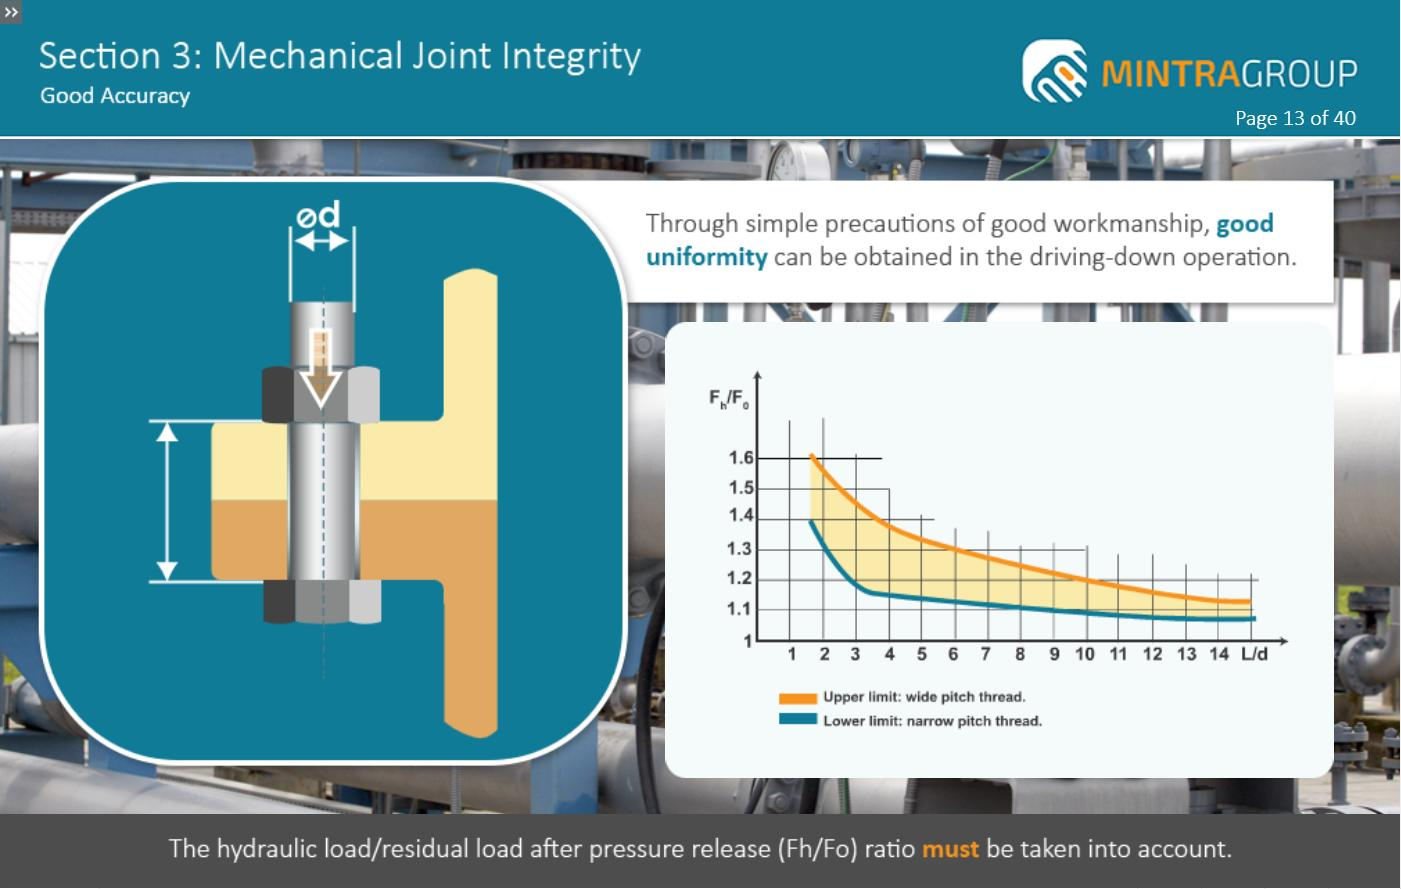 Mechanical Joint Integrity Training 4